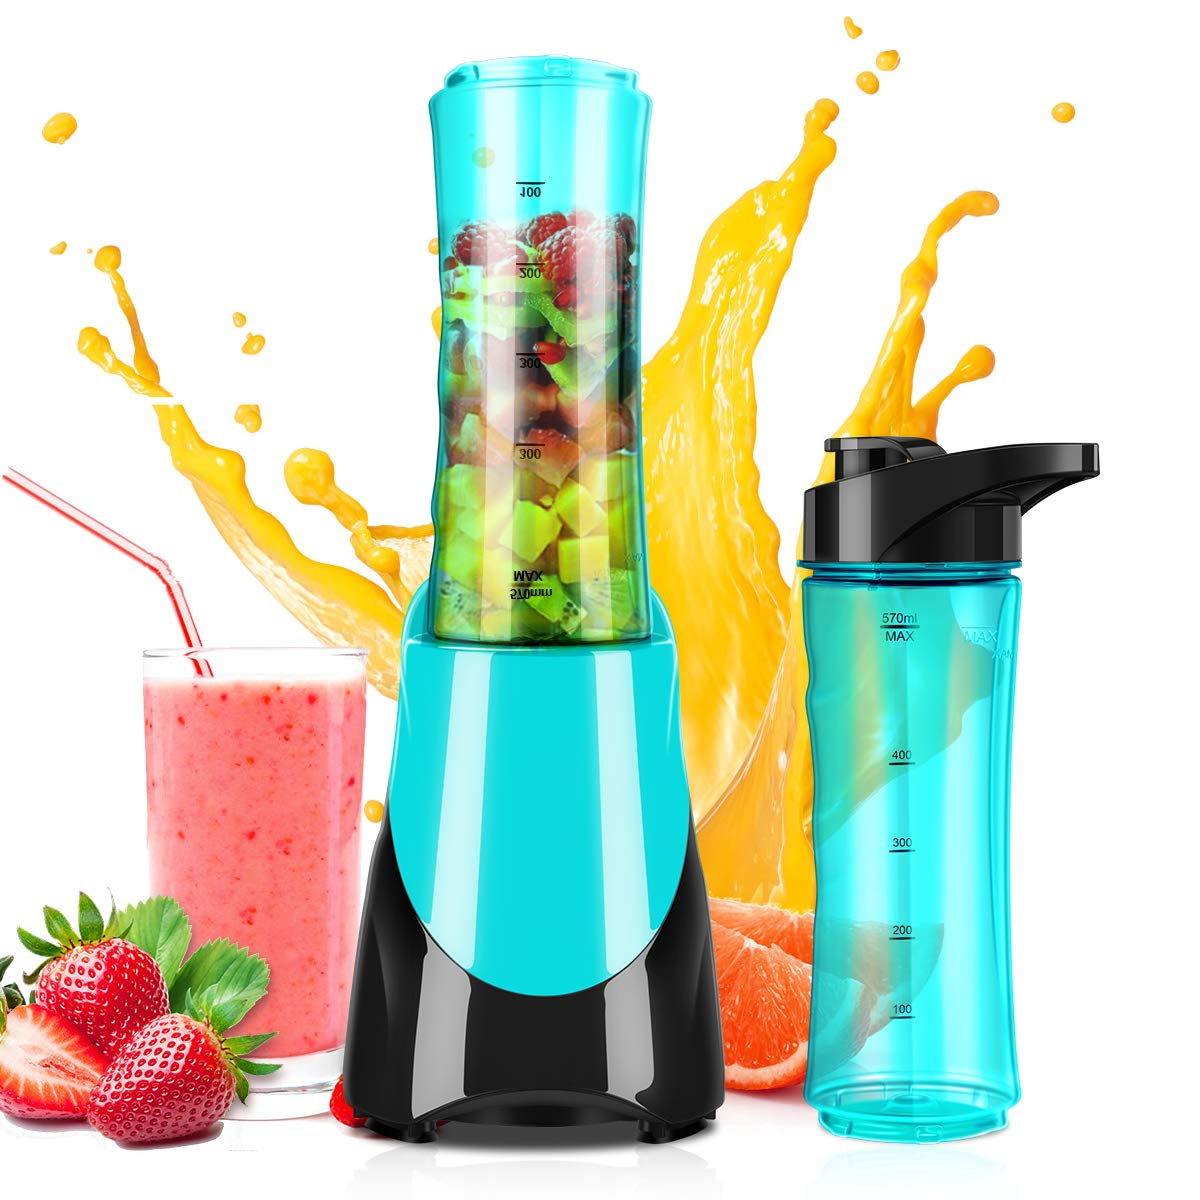 Personal Blender for Smoothies Shakes, Powerful 300W(24,000RMP) 4 Sharp Blades, Small Blender Single Serve with 20 oz Portable Sport Bottle, Blue by CUSINAID